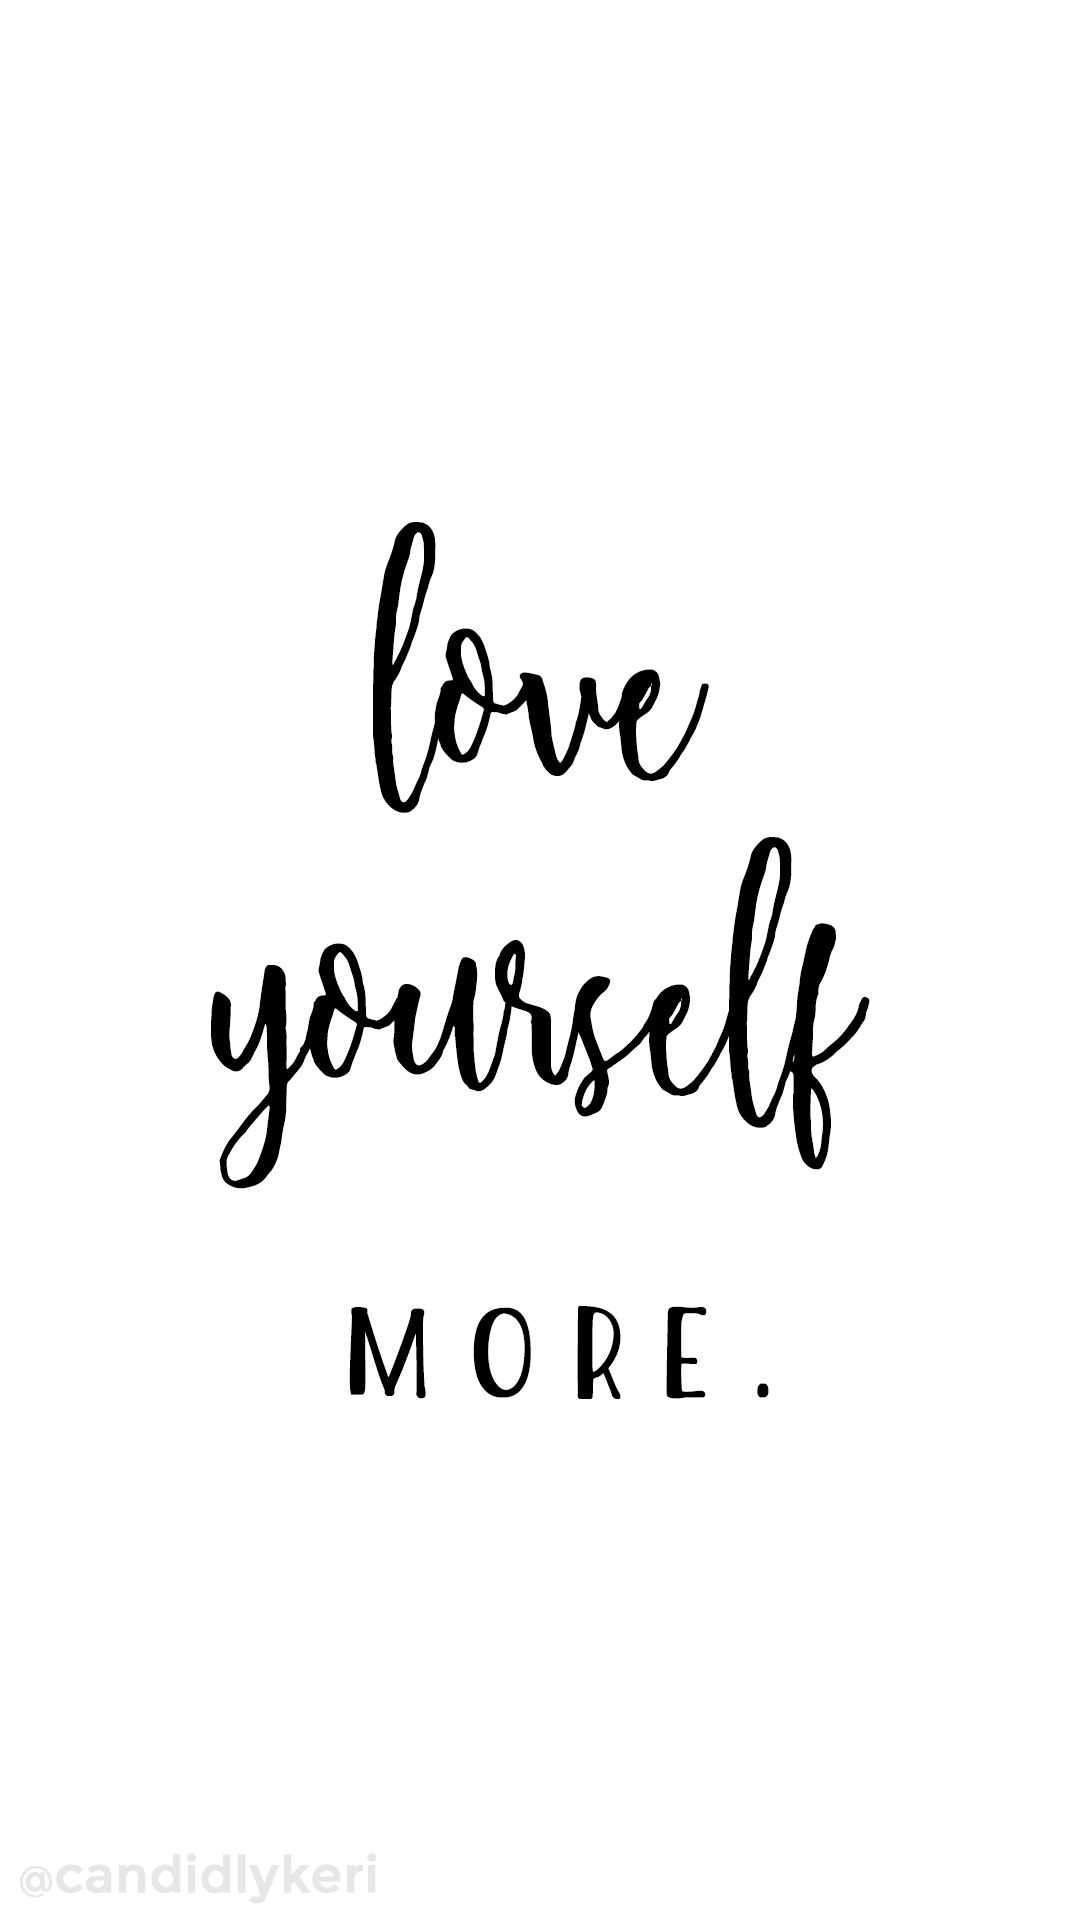 Love Yourself Hd Wallpaper : Love Yourself More Quote inspirational self love wallpaper you can download for free on the blog ...